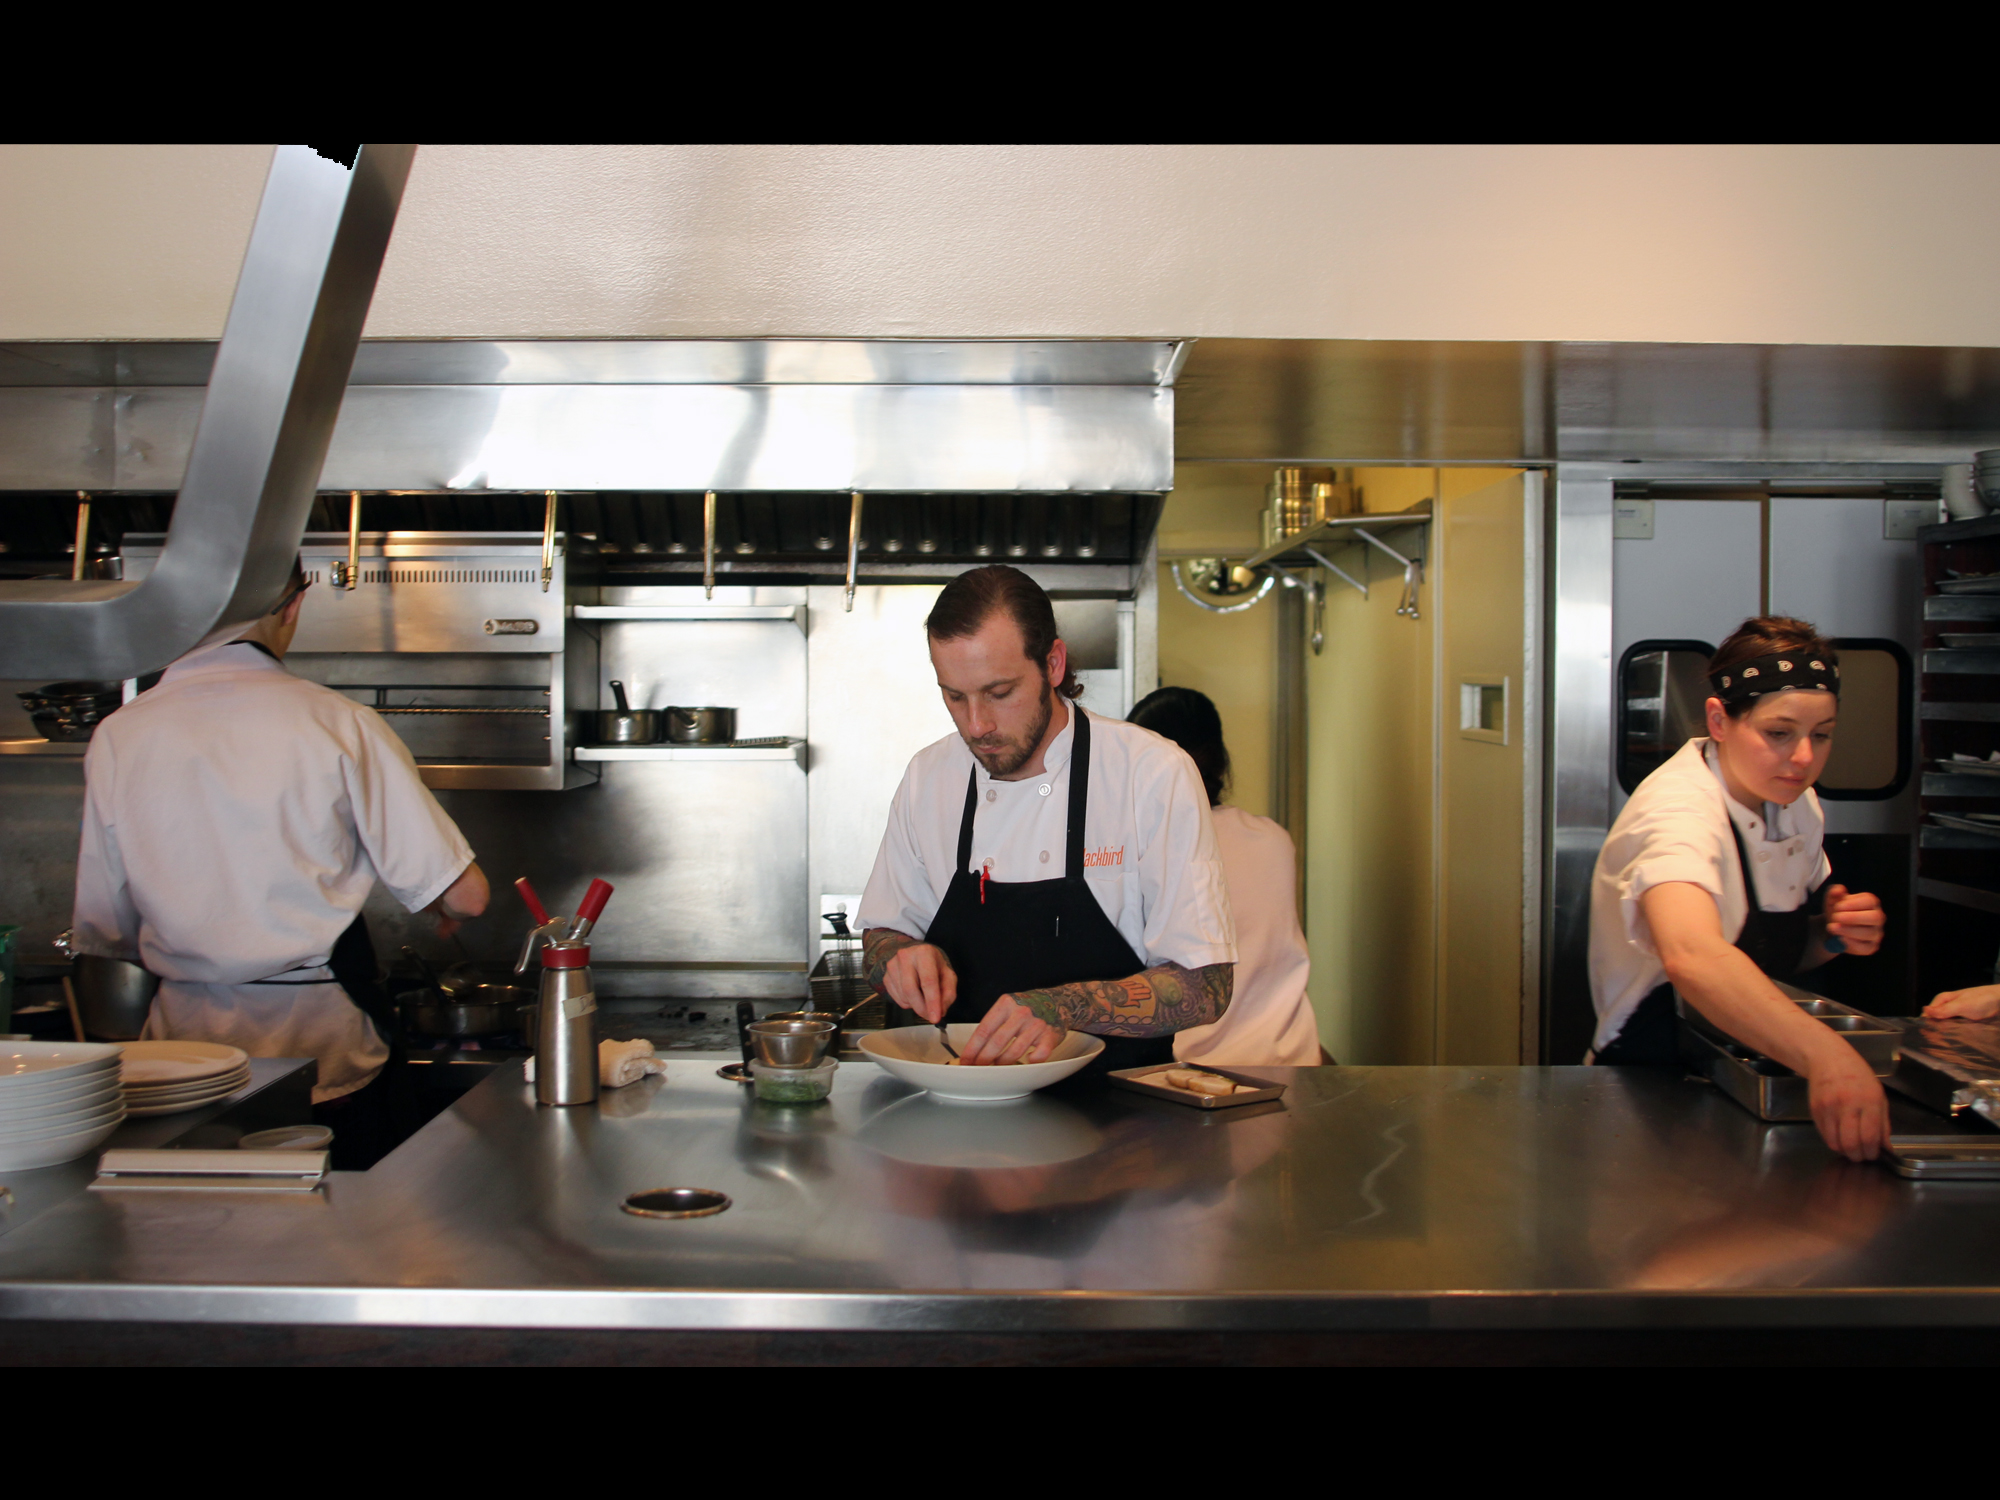 BLACKBIRD IS ONE OF THE CITY'S TOP KITCHENS. AND NOW, IT'S RYAN PFEIFFER'S